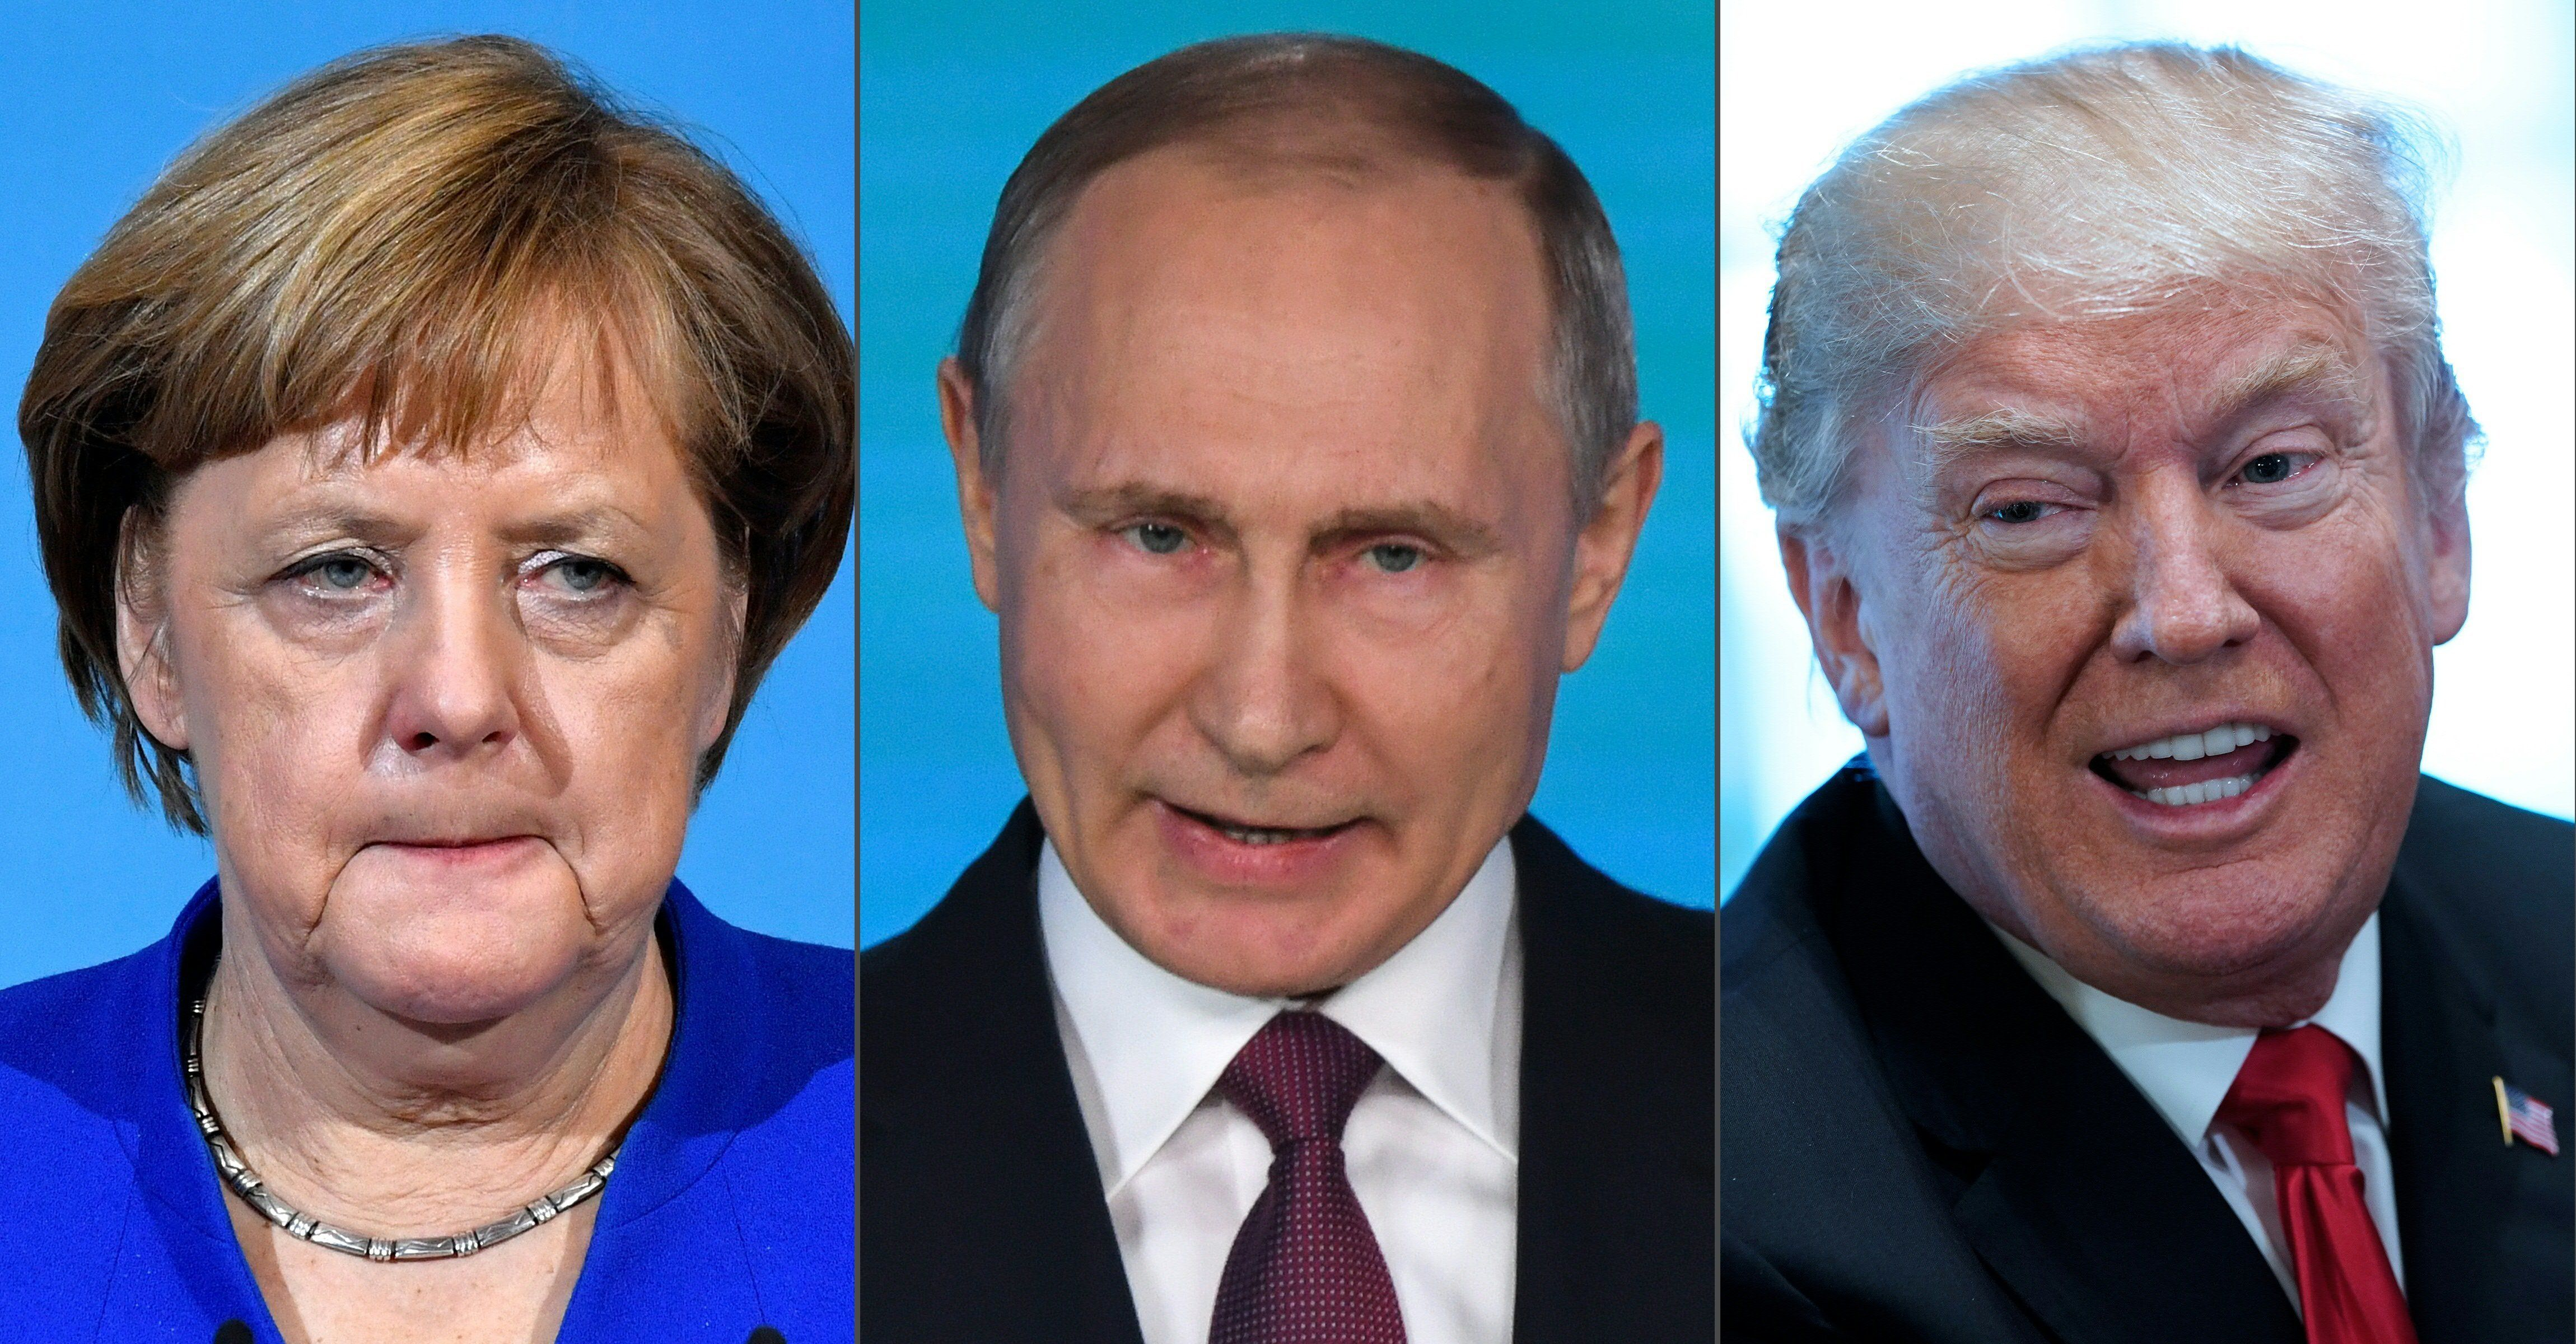 (COMBO) This combination created on March 2, 2018 of file pictures shows German Chancellor Angela Merkel (L, on January 12, 2018 in Berlin), Russian President Vladimir Putin (C, on March 1, 2018 in Moscow) and US President Donald Trump (R, on March 1, 2018 in Washington, DC).  US President Donald Trump and German Chancellor Angela Merkel in a phone conversation shared concern over President Vladimir Putin's claim Russia was developing new 'invincible' weapons, Berlin said on March 2, 2018. / AFP PHOTO        (Photo credit should read JOHN MACDOUGALL,YURI KADOBNOV,MANDEL NGAN/AFP/Getty Images)